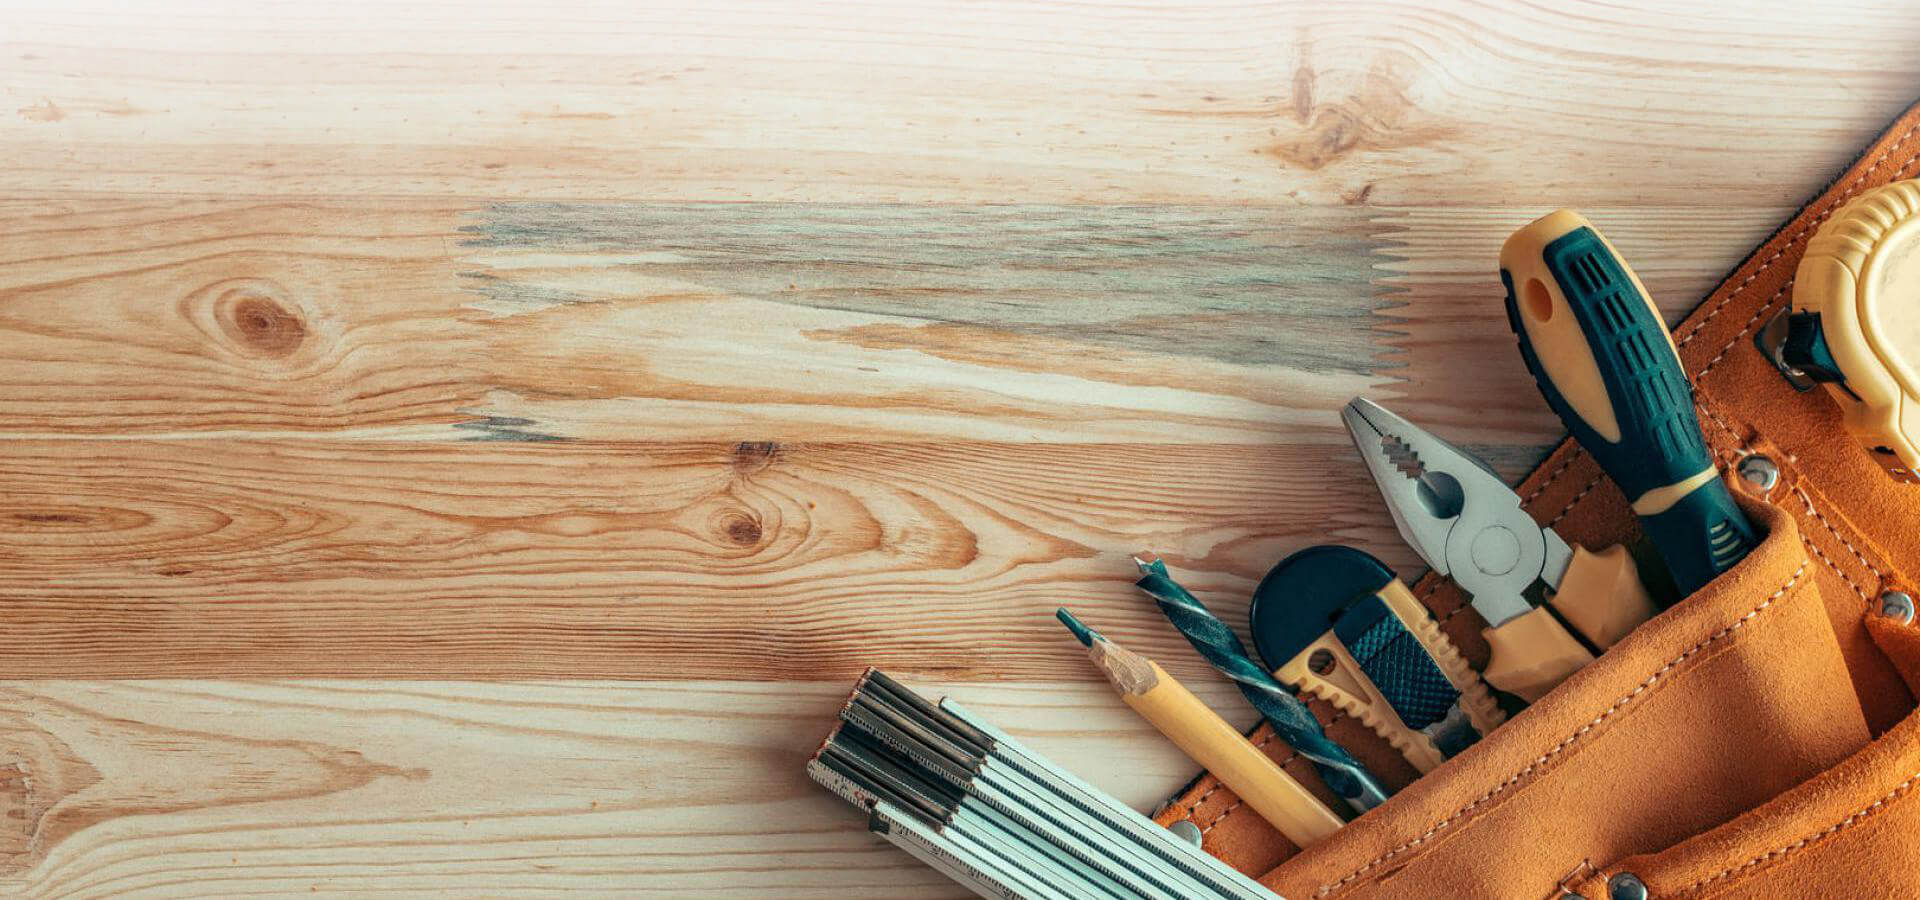 Do You Have The Skills To Do Your Own Renovations?